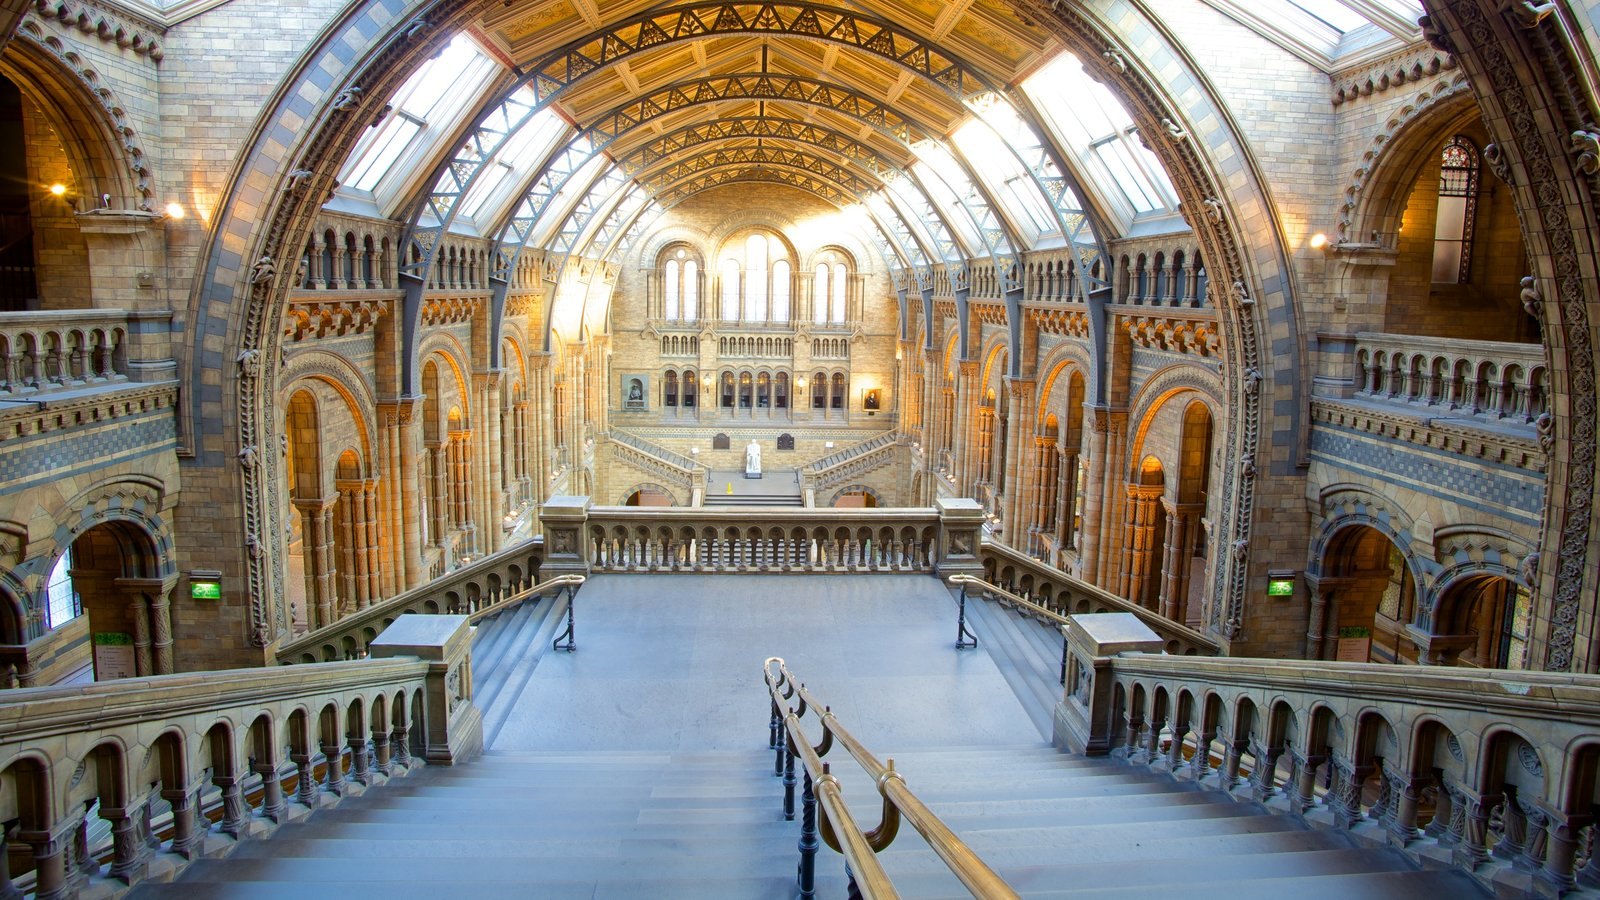 London Natural History Museum featuring heritage architecture, heritage elements and interior views